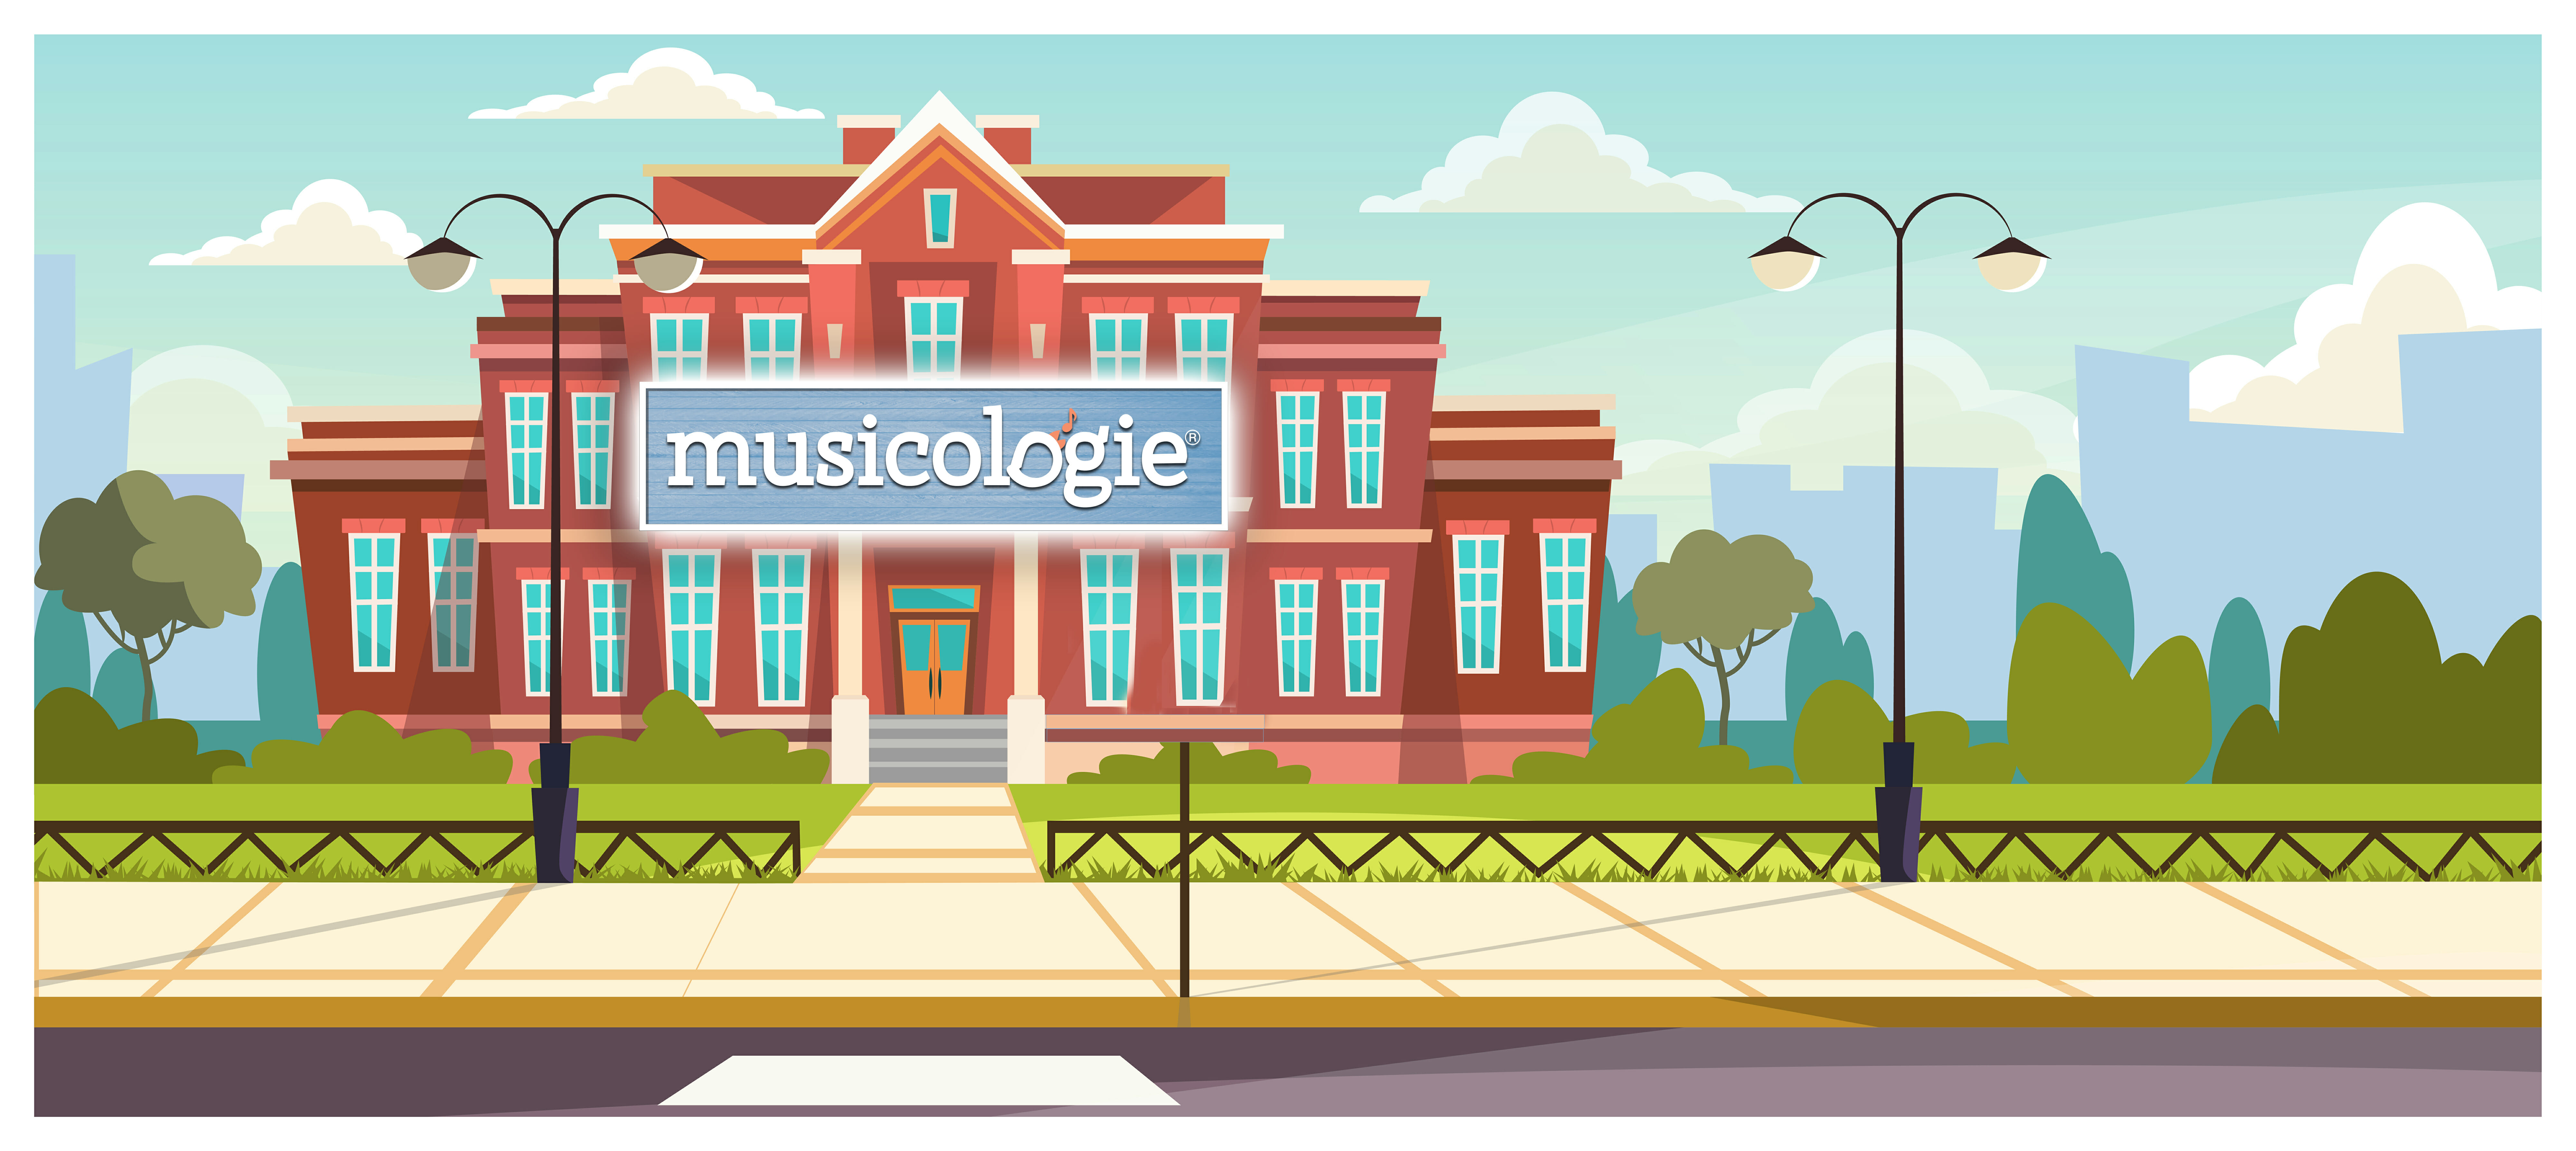 Musicologie Sign on School Building